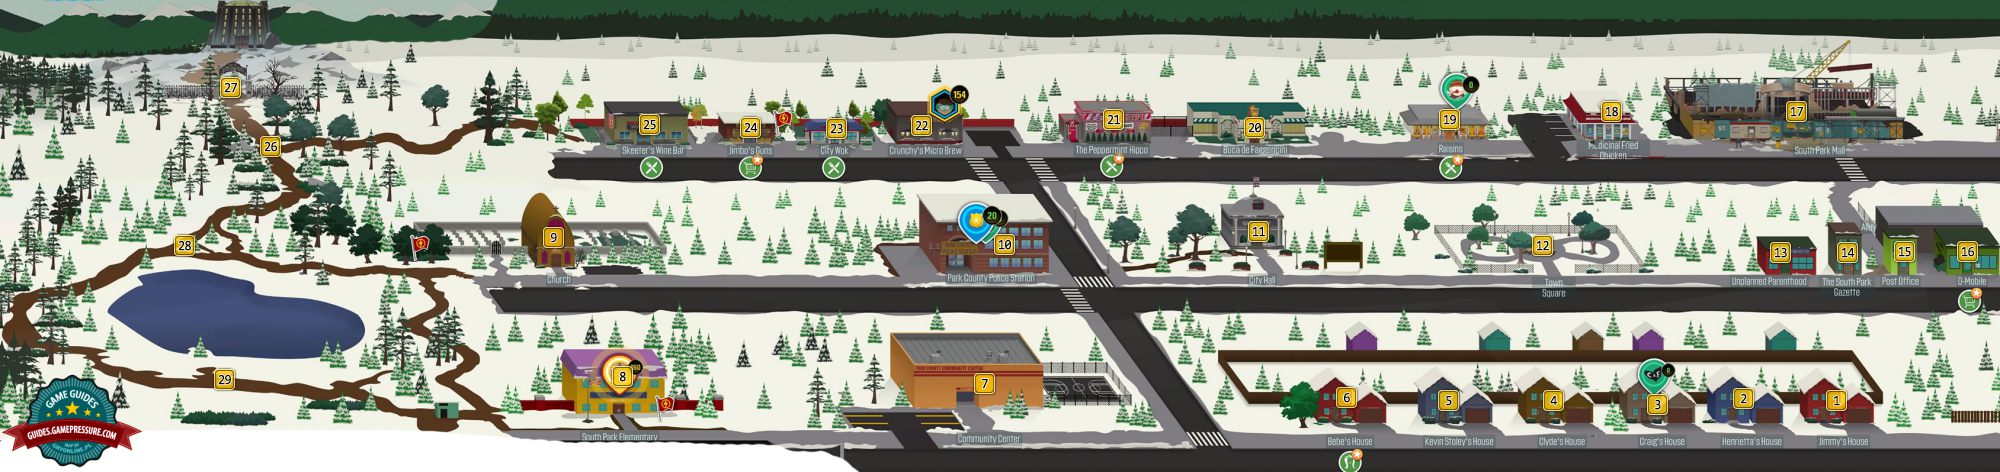 Map Of South Park Map of the Western South Park   South Park: The Fractured But